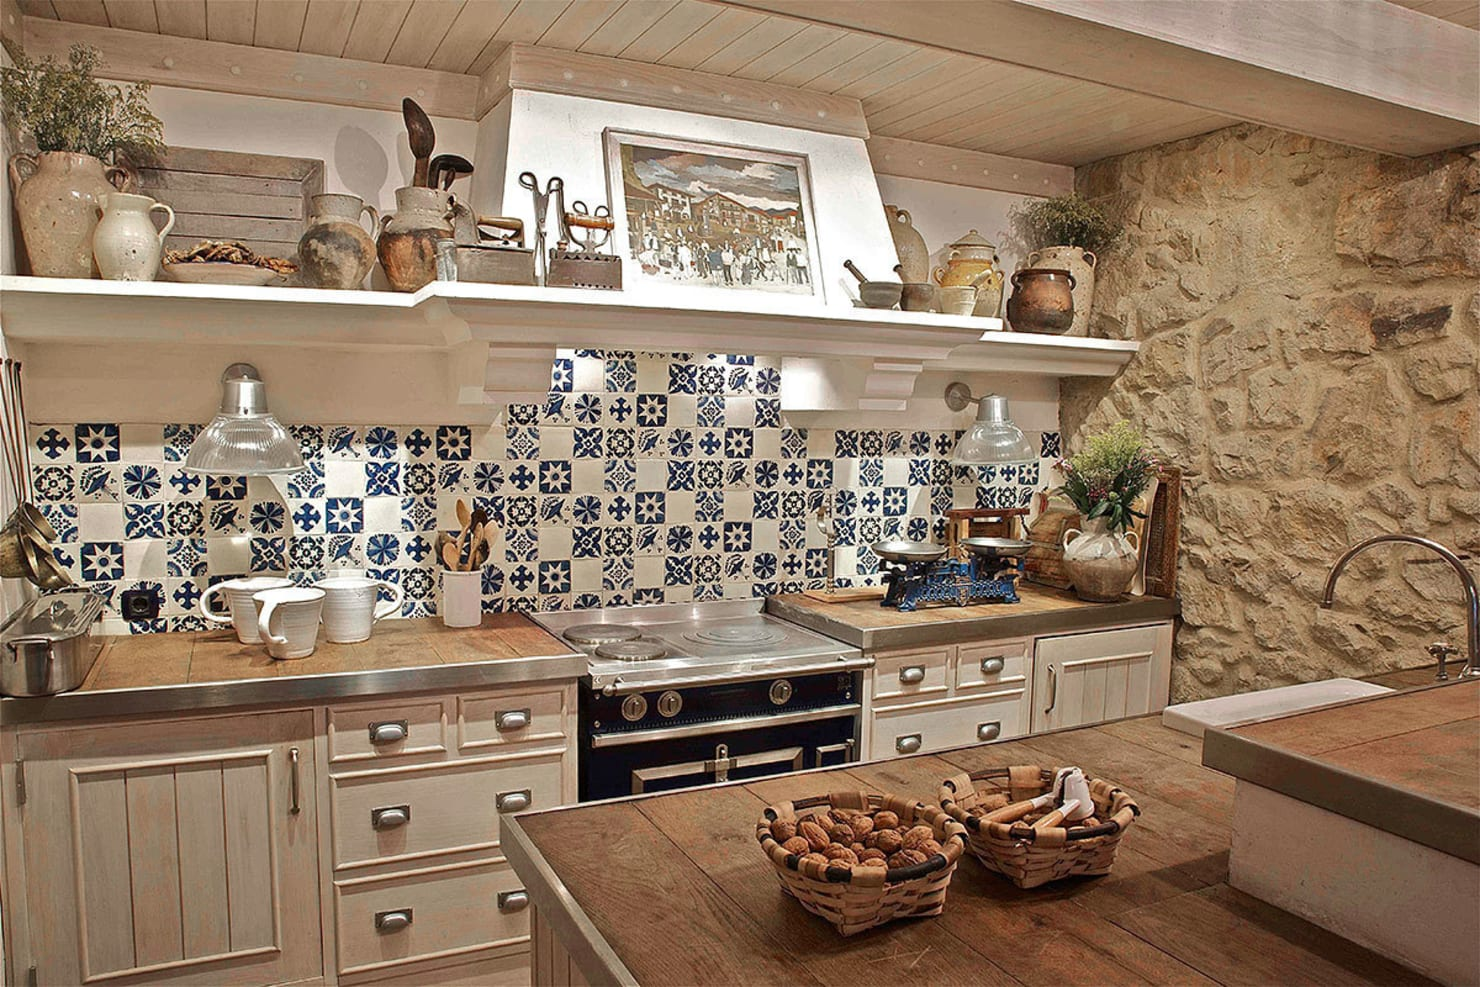 10 affordable, rustic kitchen ideas to copy